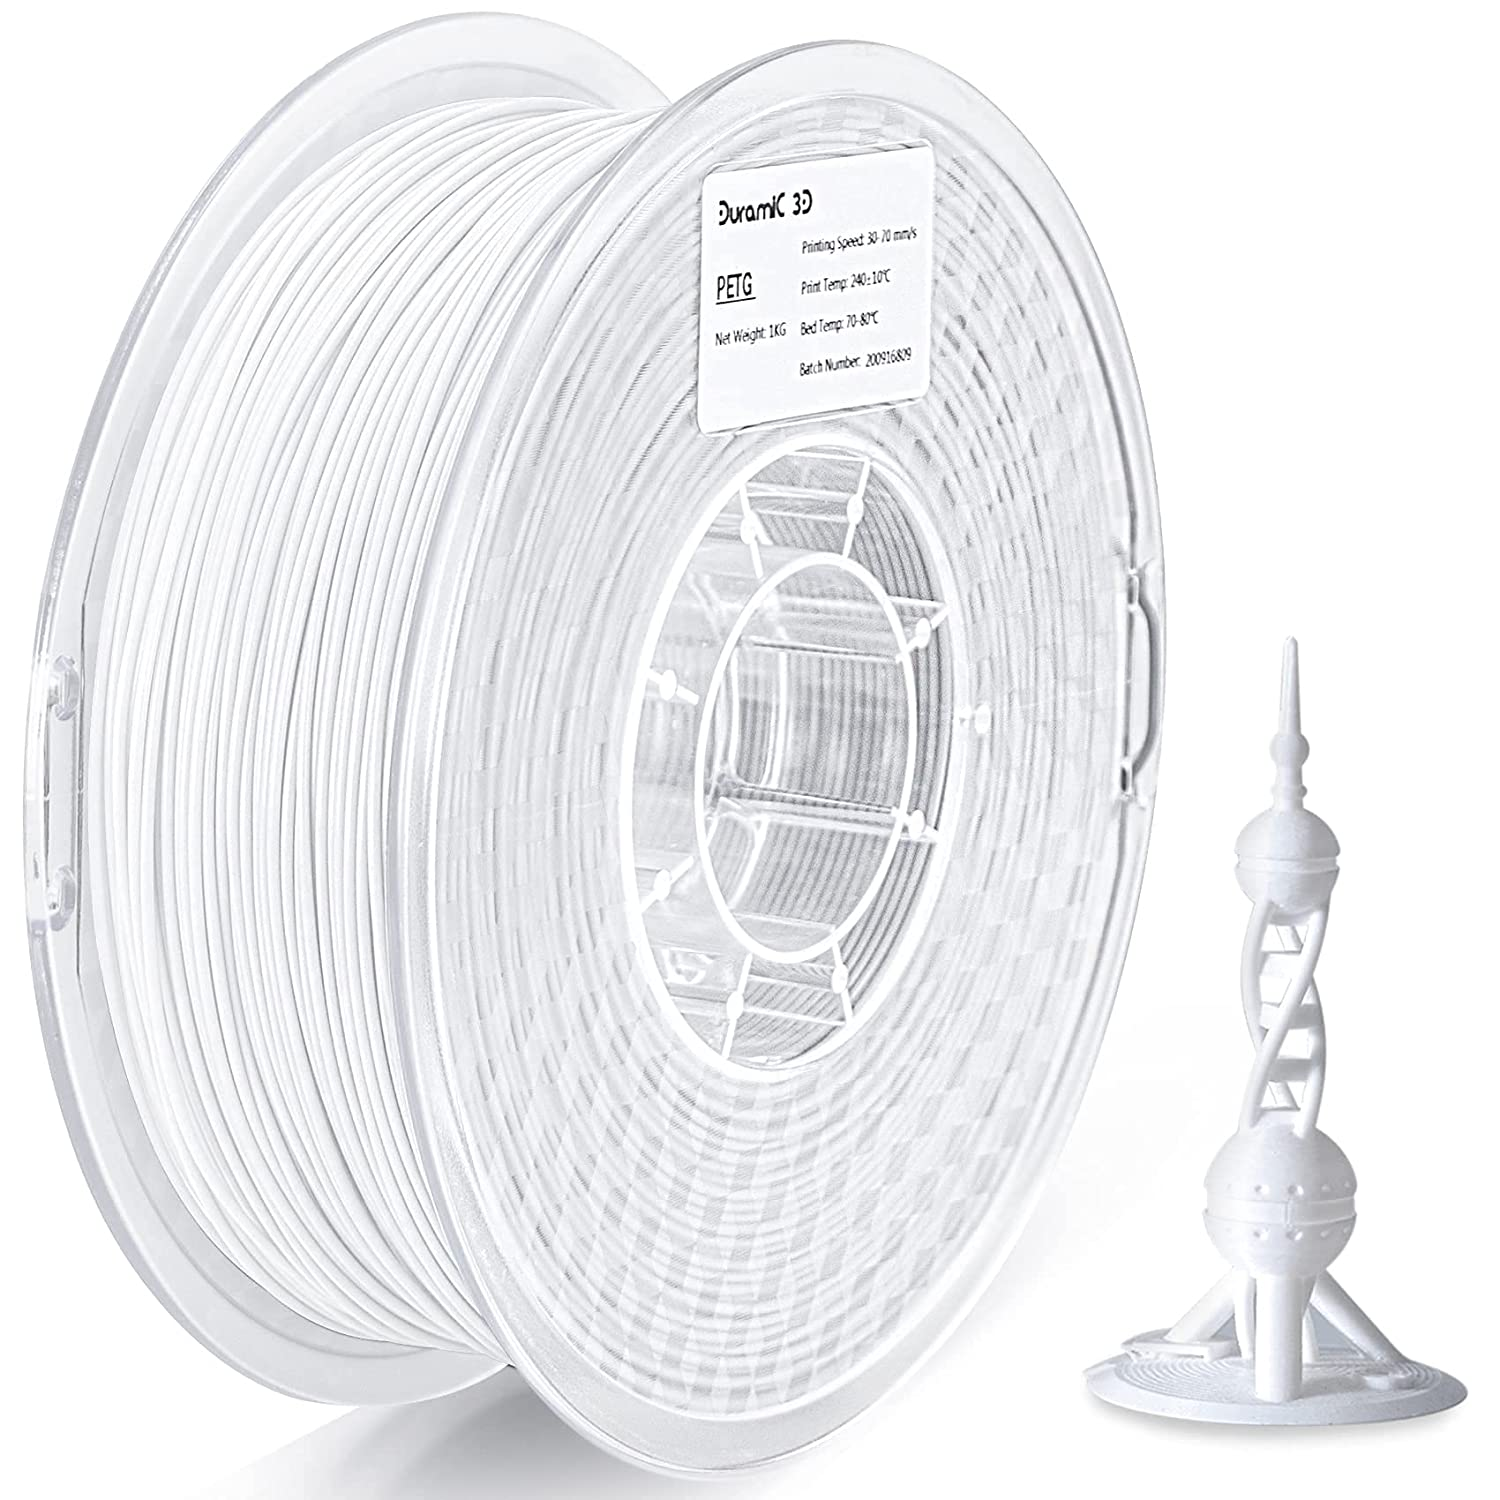 PETG New Challenge the lowest price of Japan ☆ Free Shipping Filament 1.75mm Duramic 3D FD Fit White 1kg